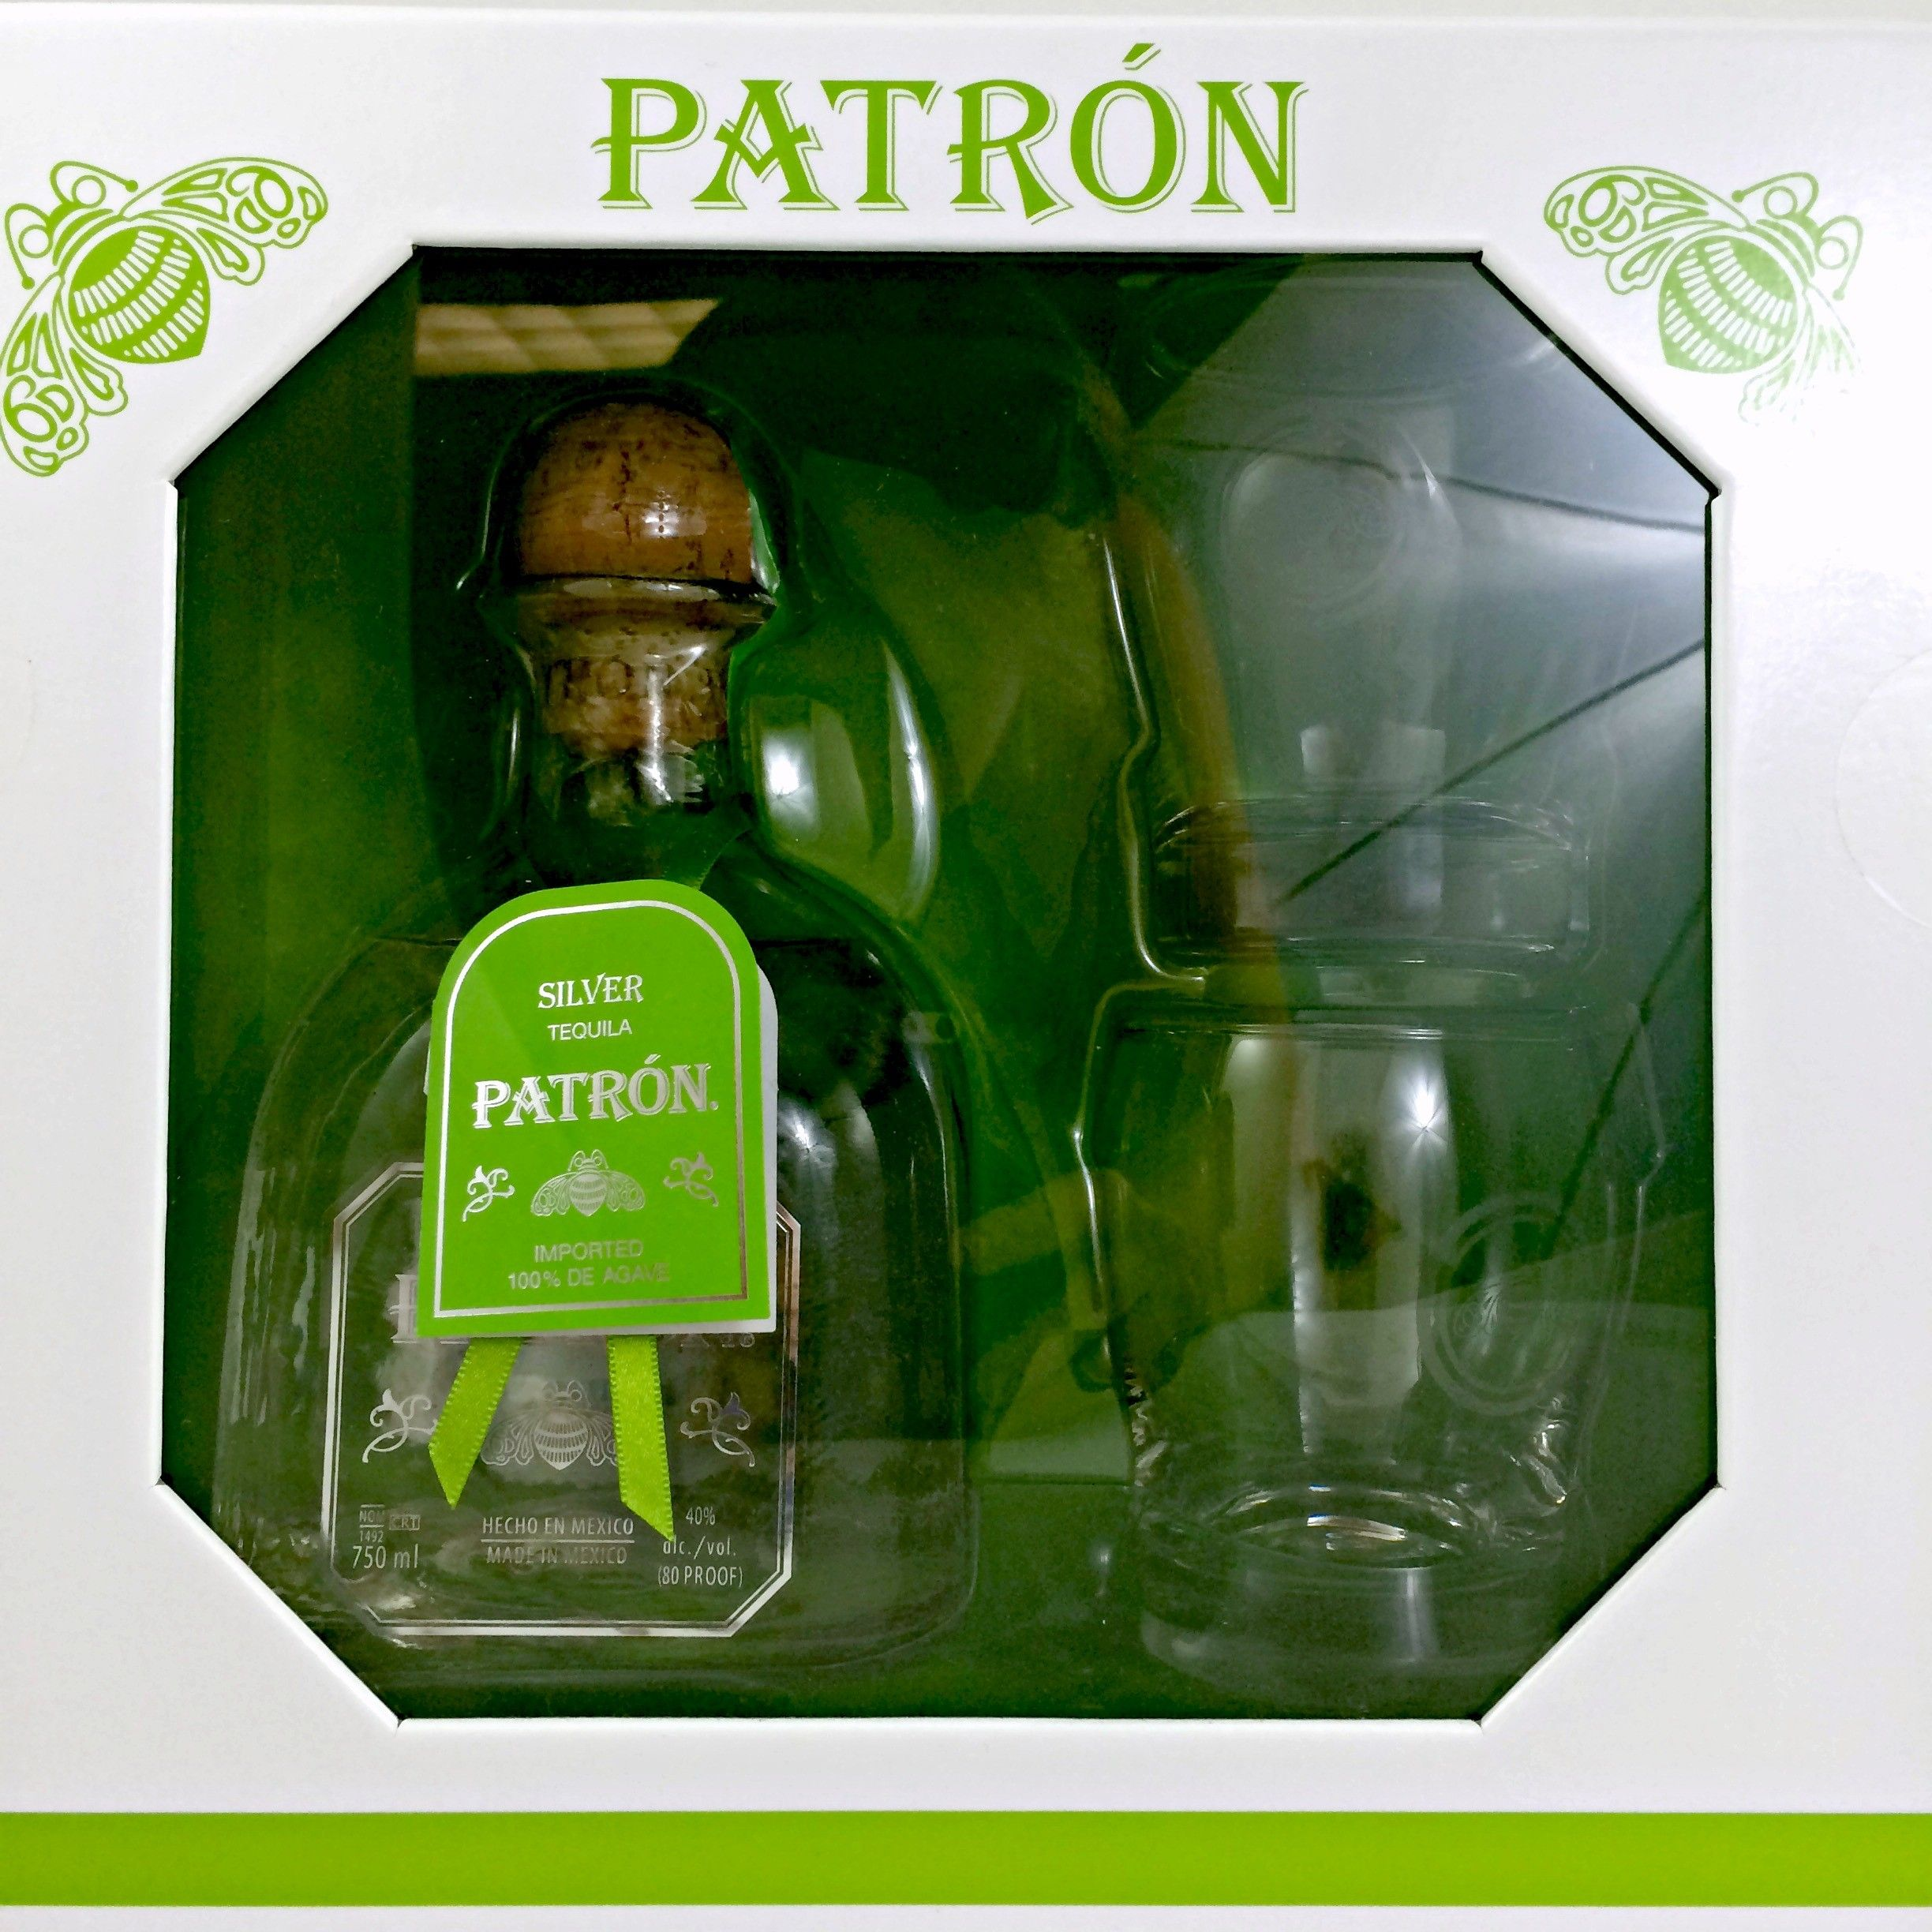 Patron Silver Tequila Gift Set with 2 Glasses; Classic, signature ...